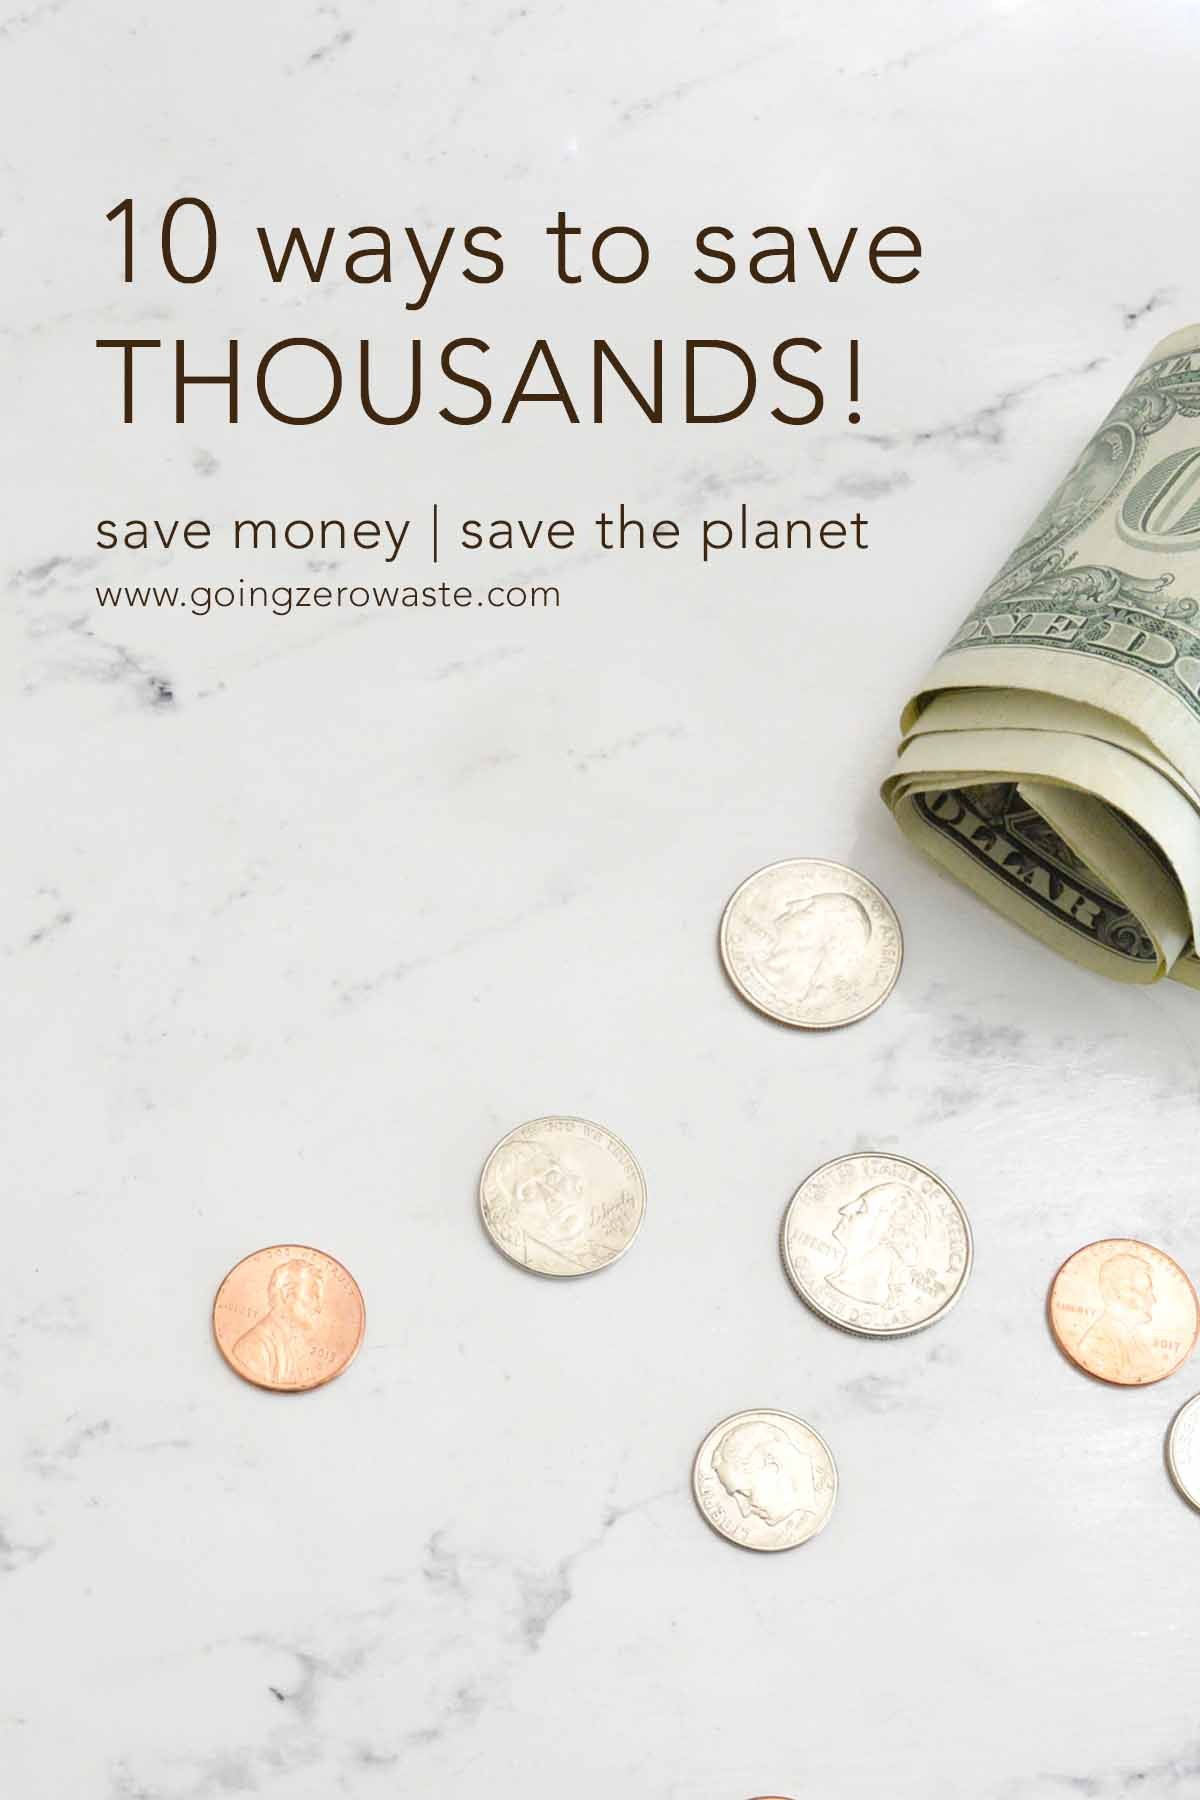 SaveMoneyGoGreen3.jpg10 Ways to Save money and the planet from www.goingzerowaste.com #ecofriendly #zerowaste #sustainableliving #savemoney #frugal #simpleliving